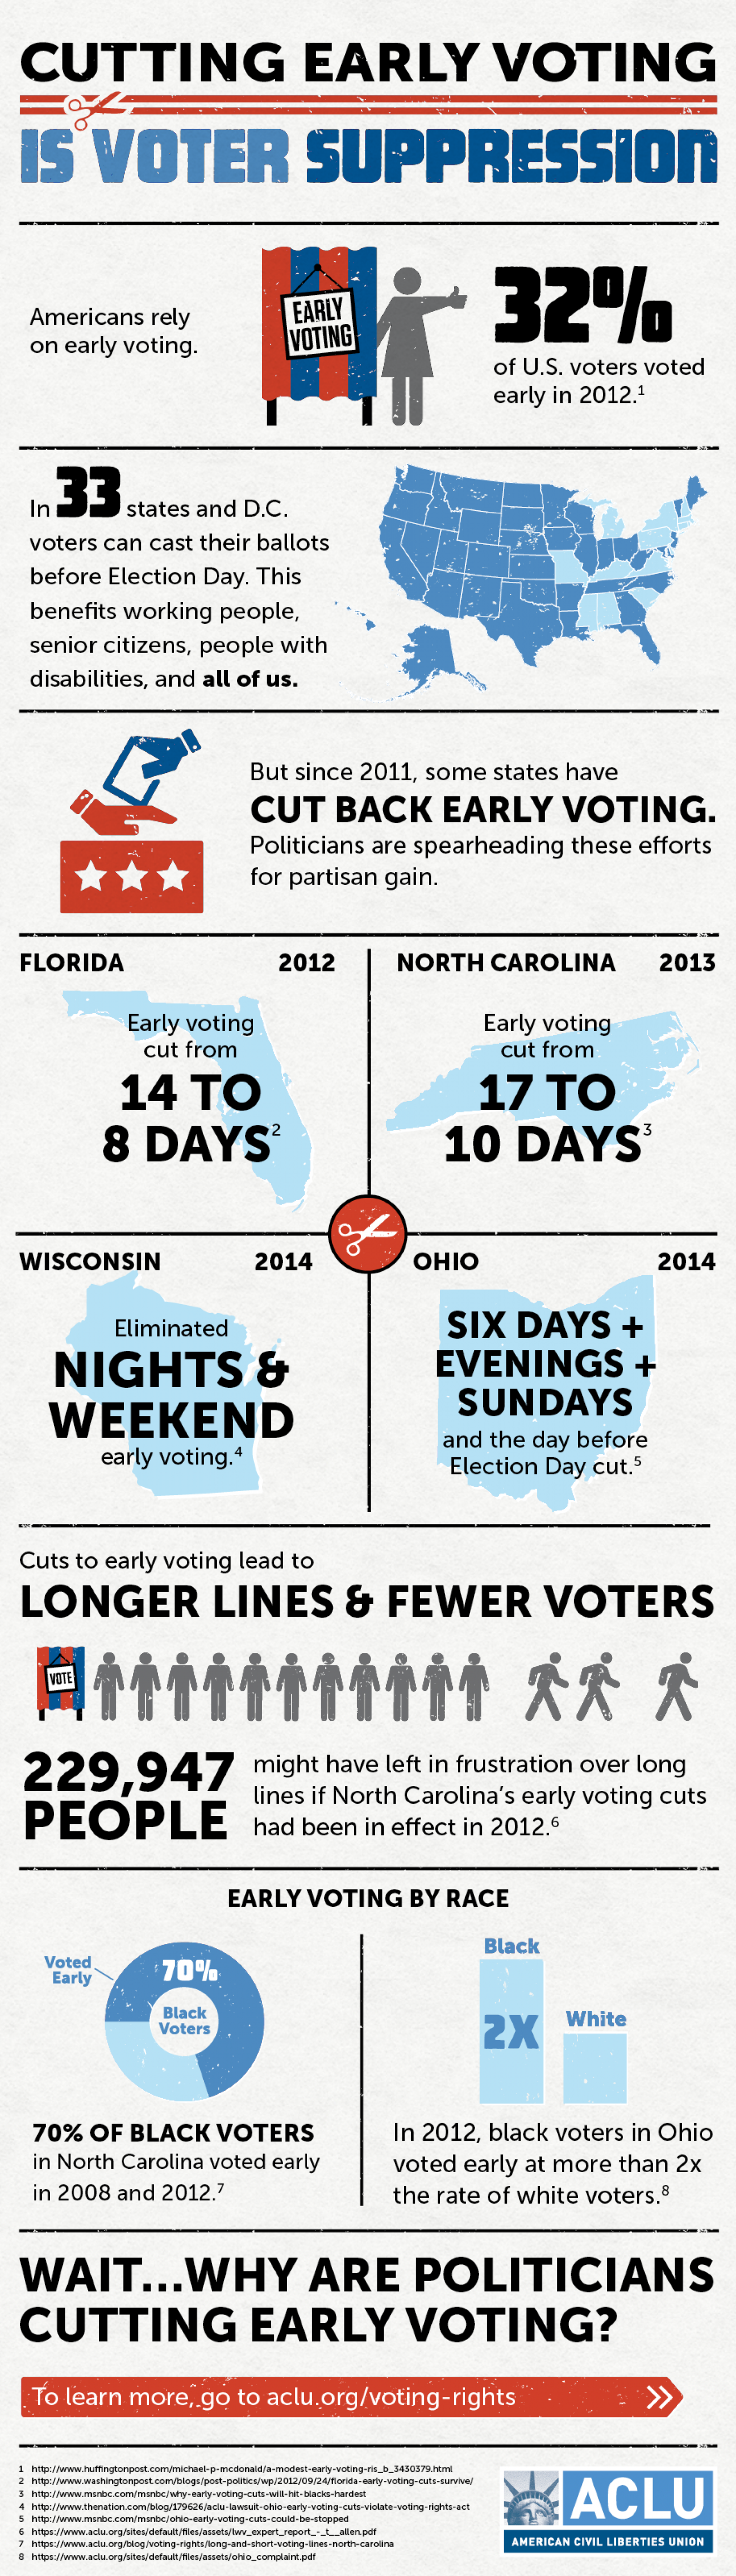 Cutting Early Voting is Voter Suppression Infographic